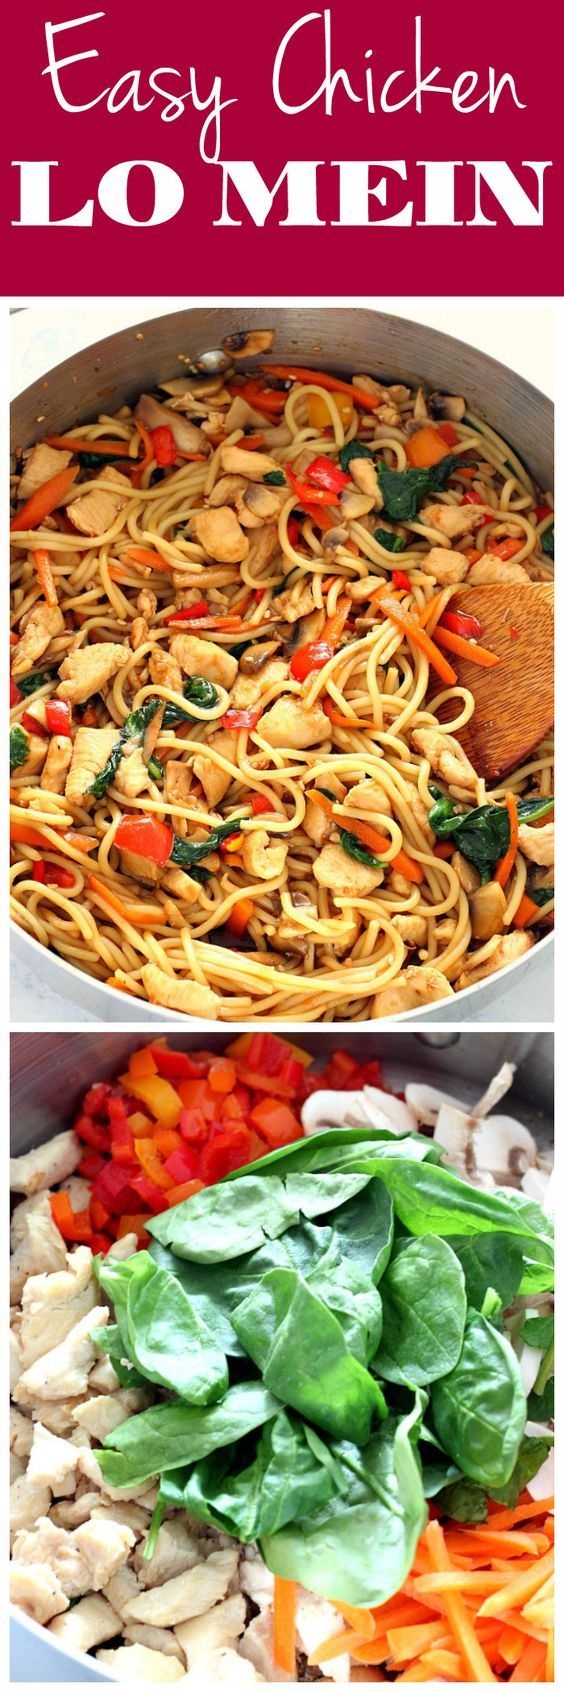 Easy Chicken Lo Mein Recipe - quick and easy homemade chicken, vegetables and noodles dish with teriyaki sauce.